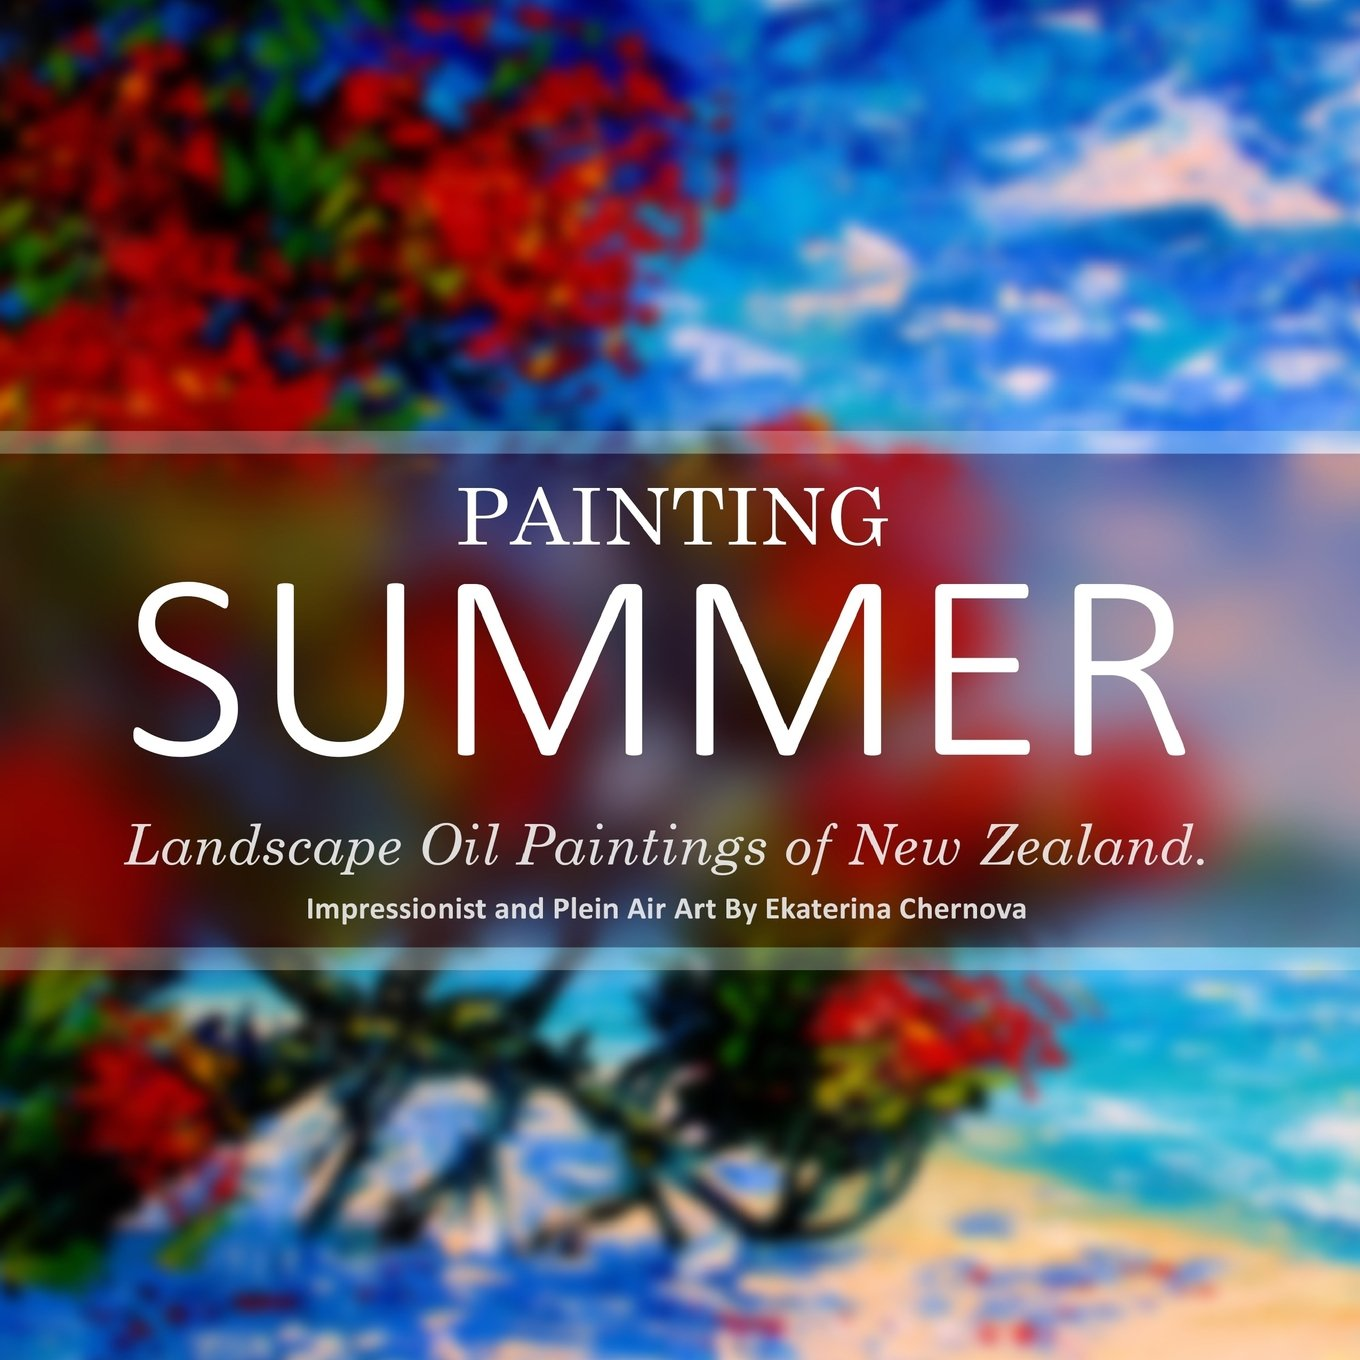 Painting Summer Landscape Oil Paintings Of New Zealand